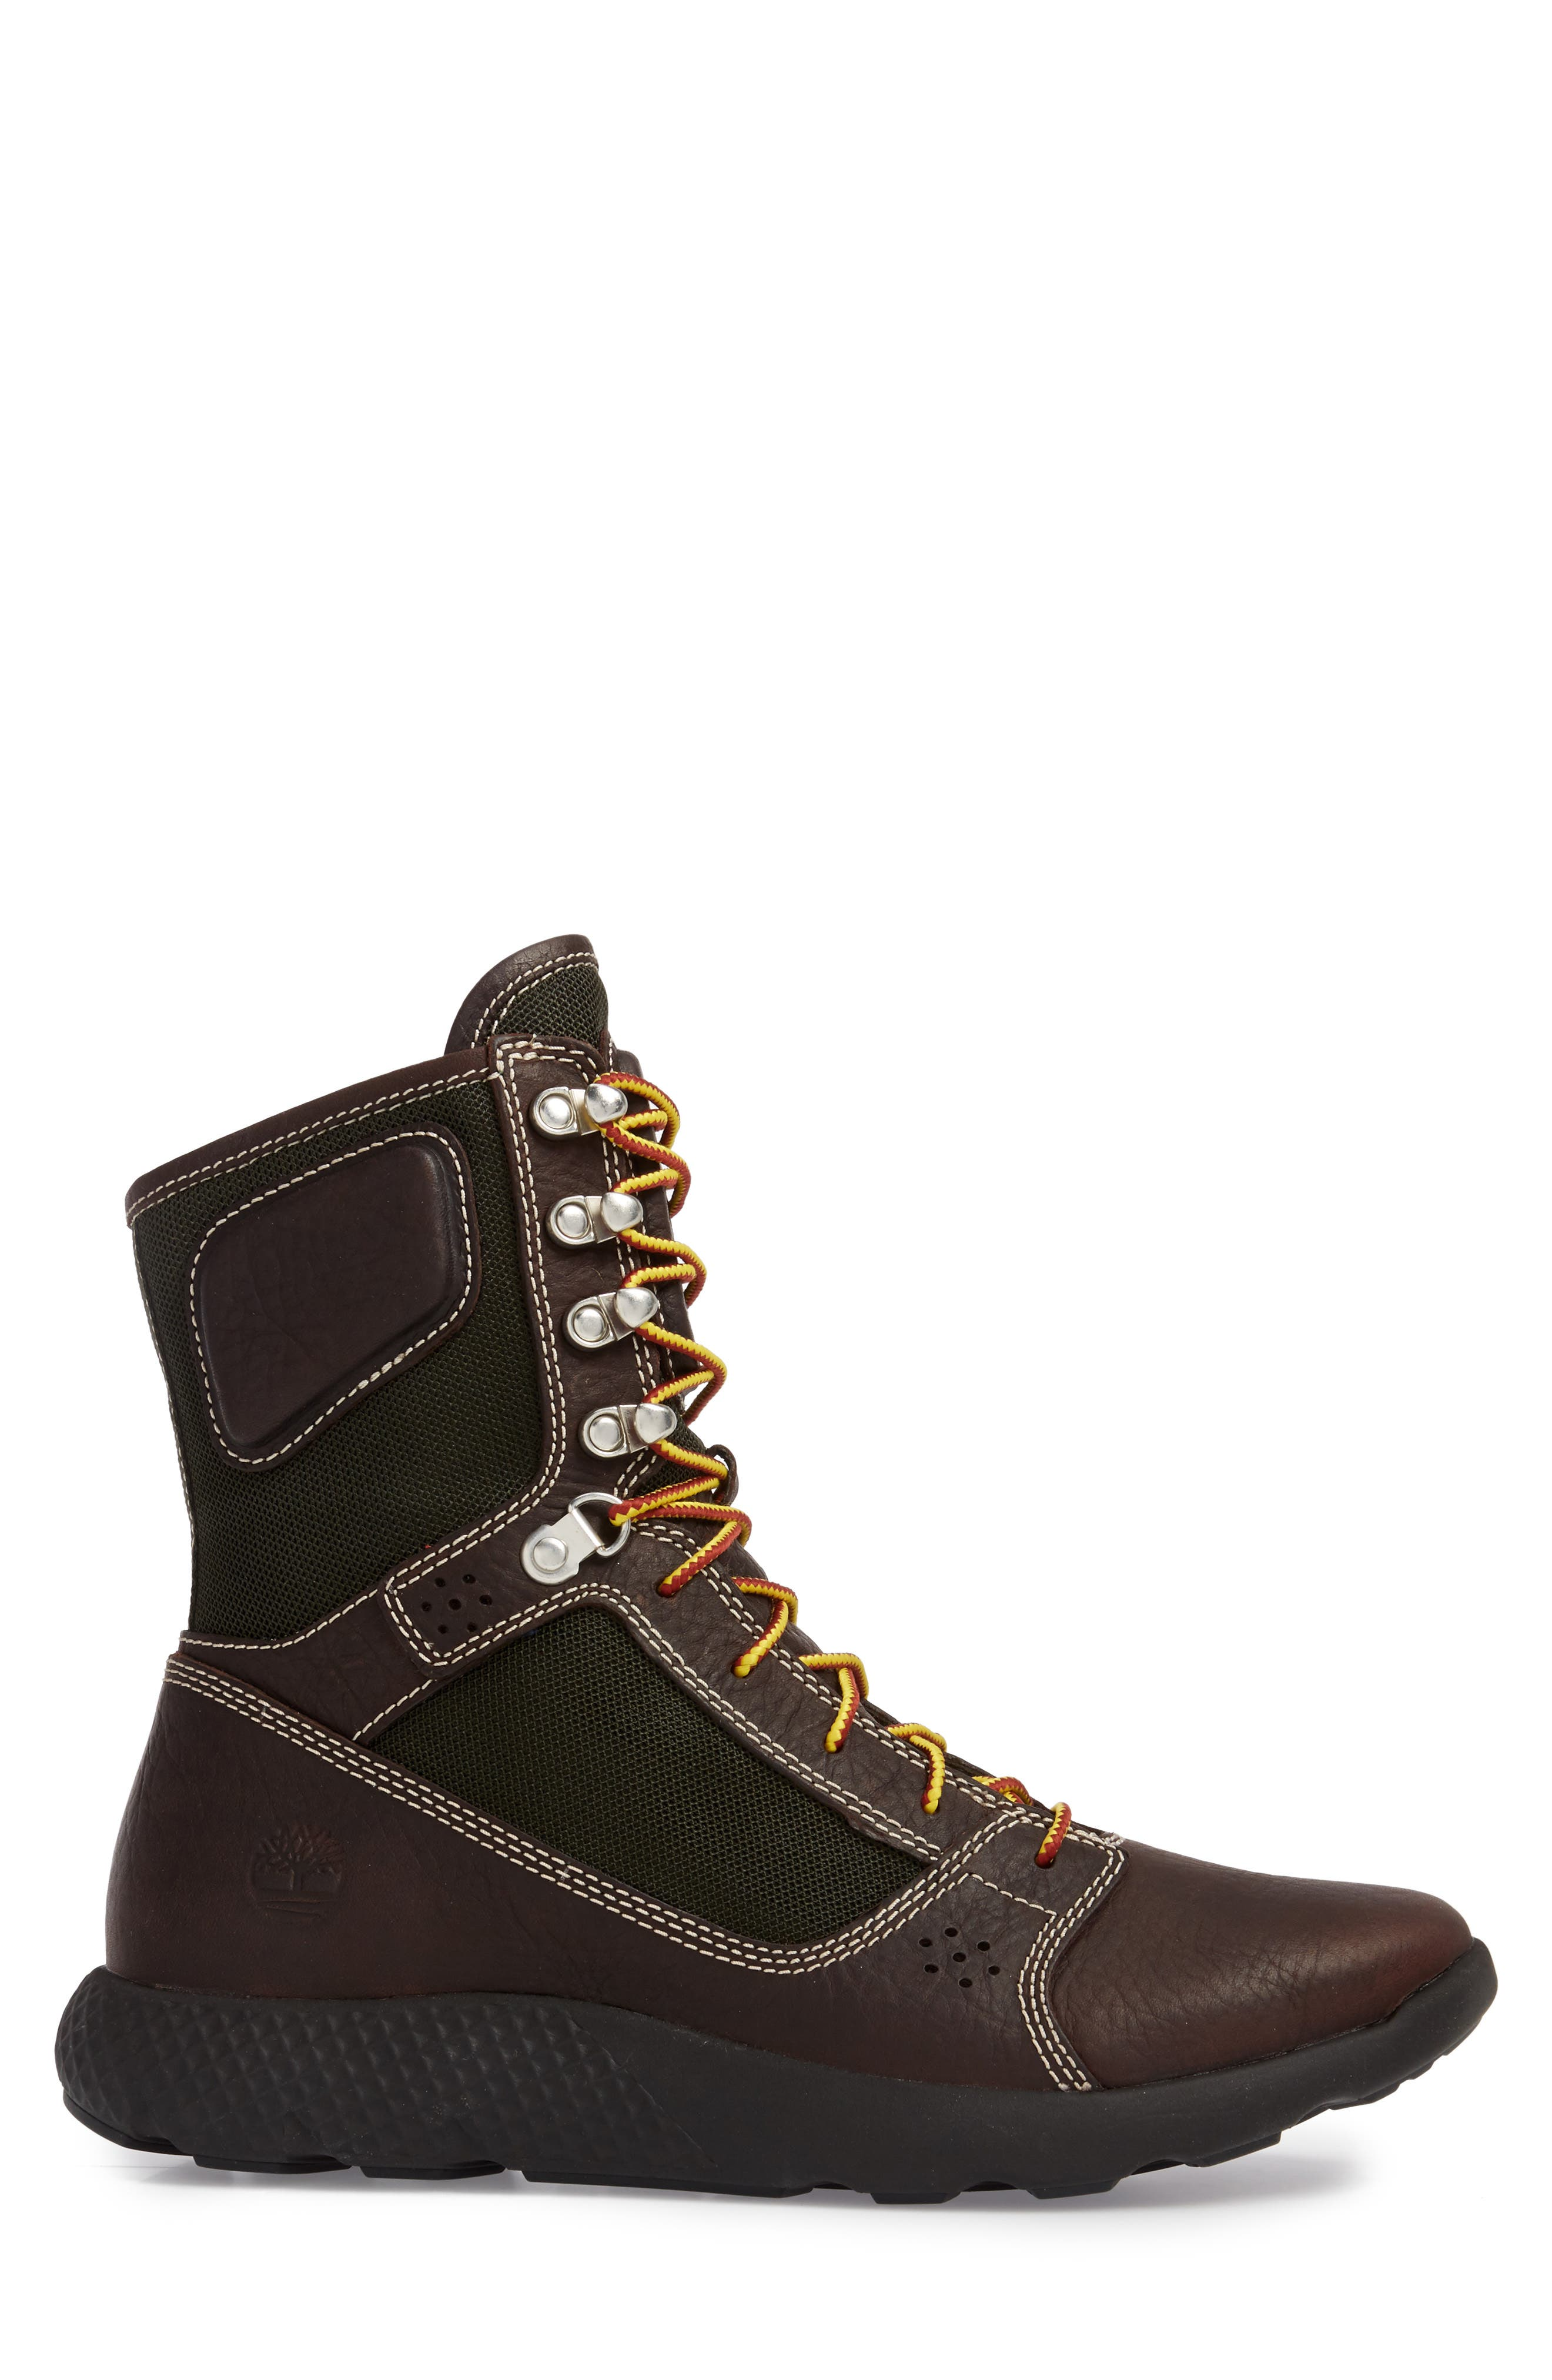 FlyRoam Tactical Boot,                             Alternate thumbnail 3, color,